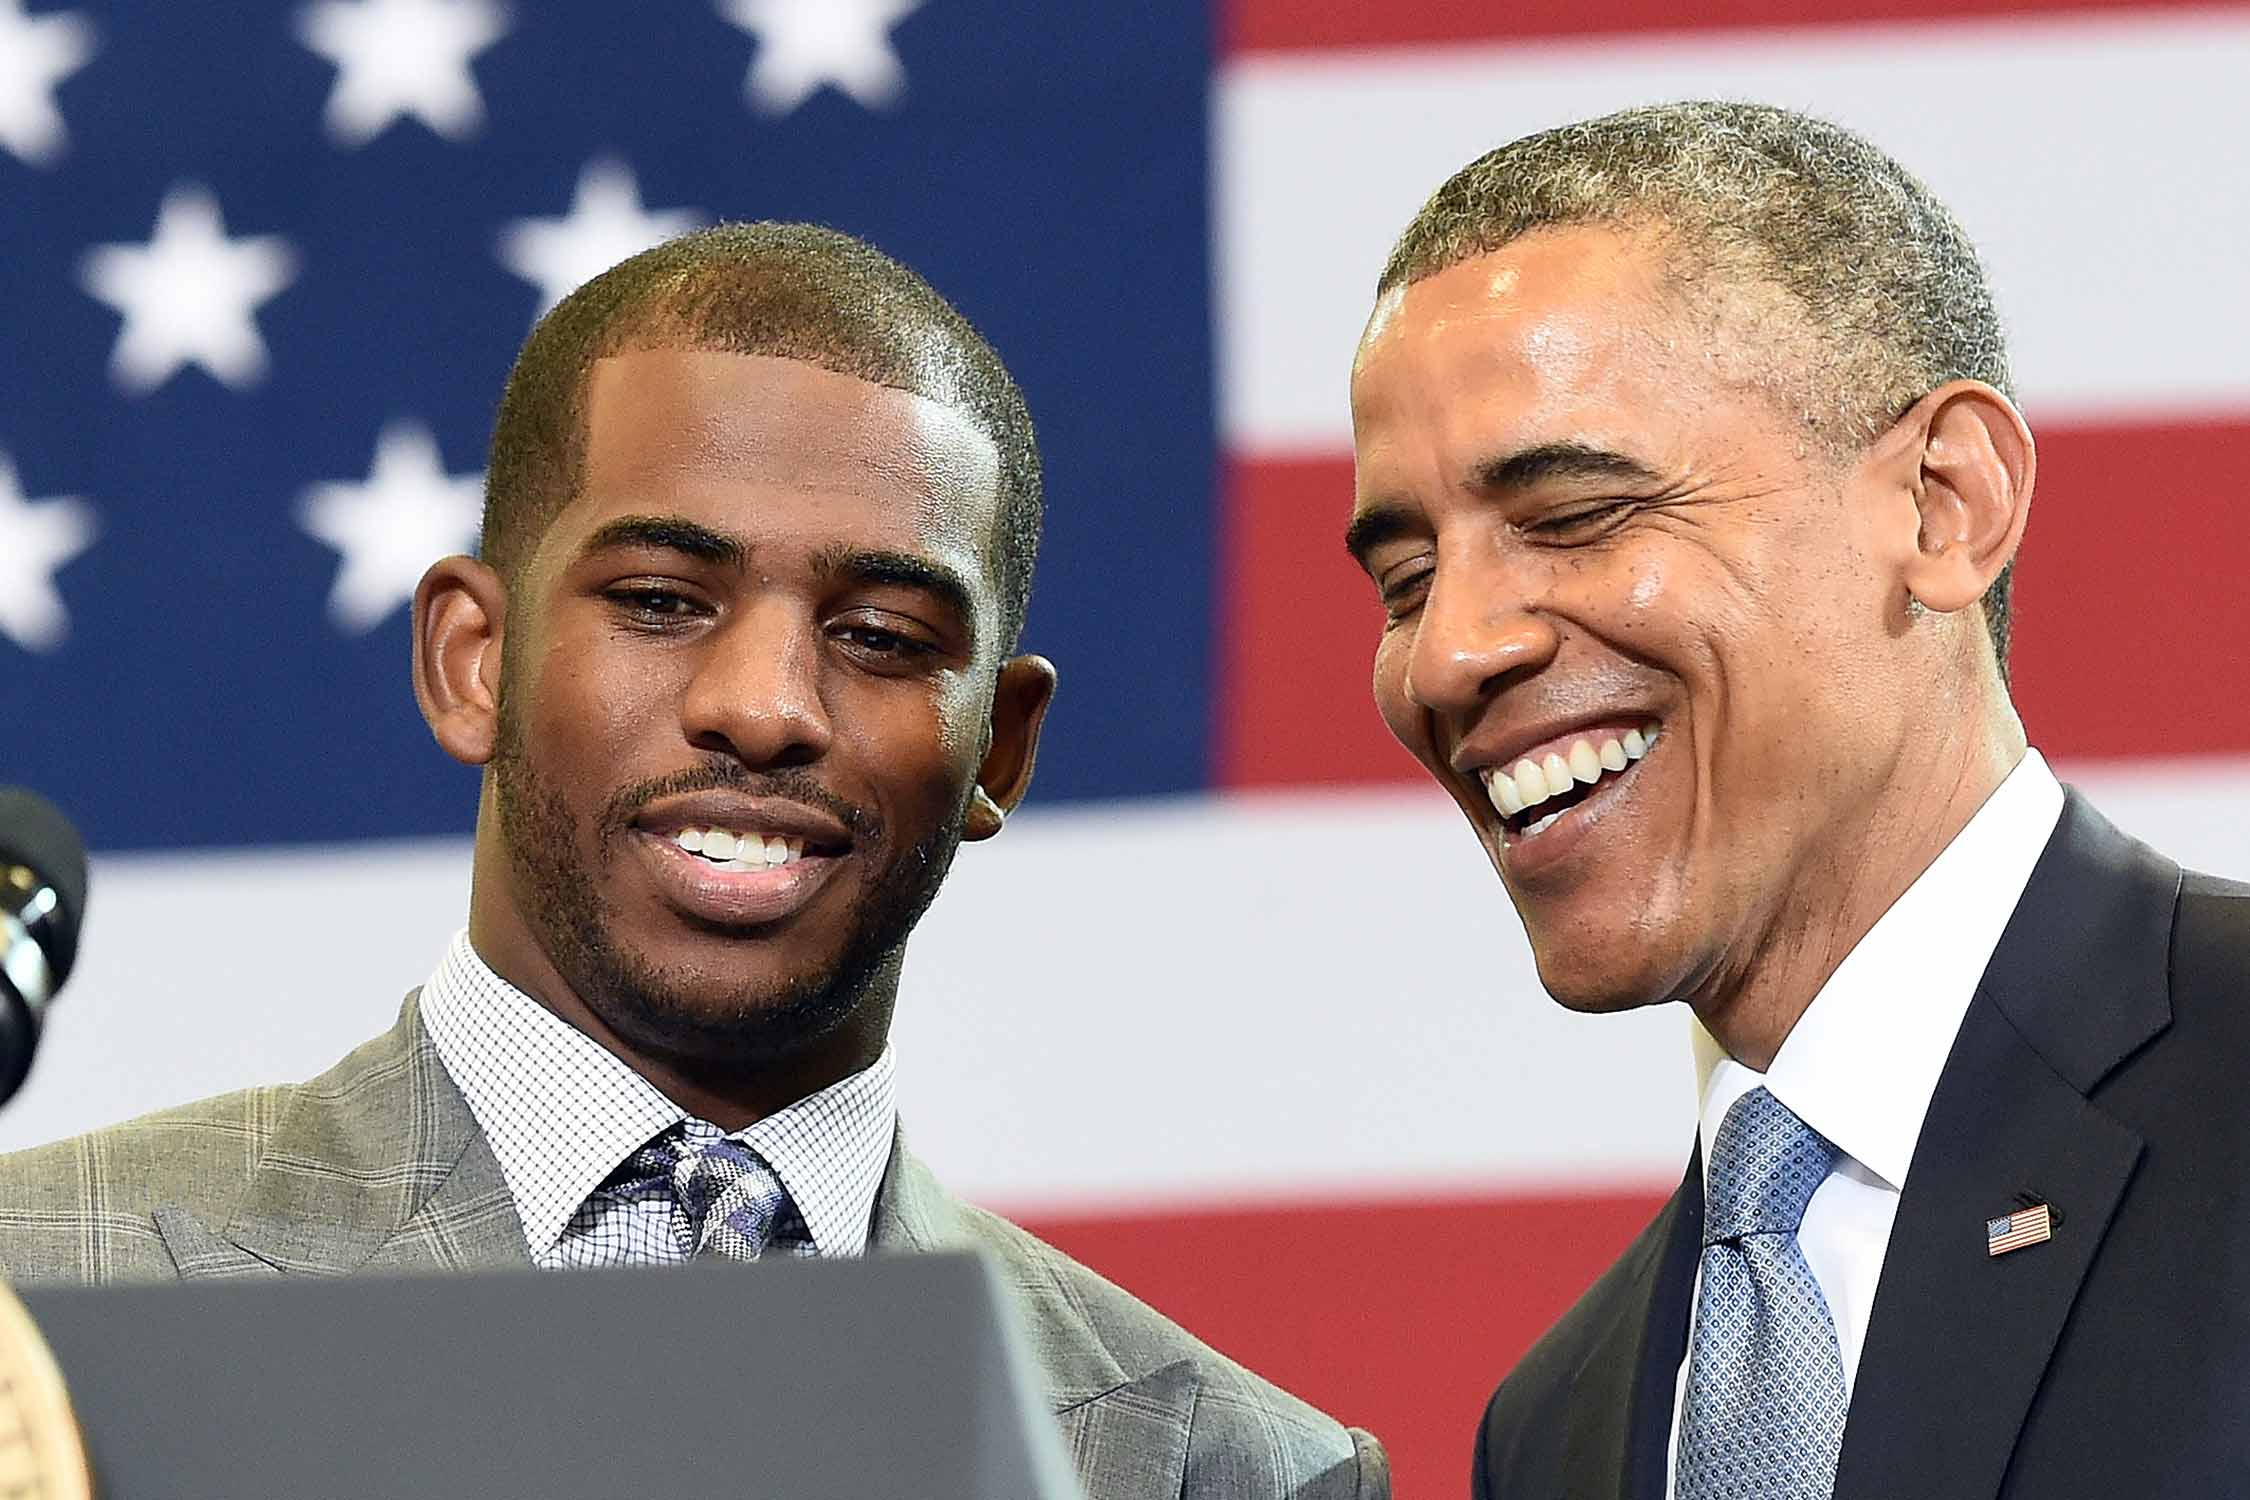 Chris Paul and Barack Obama